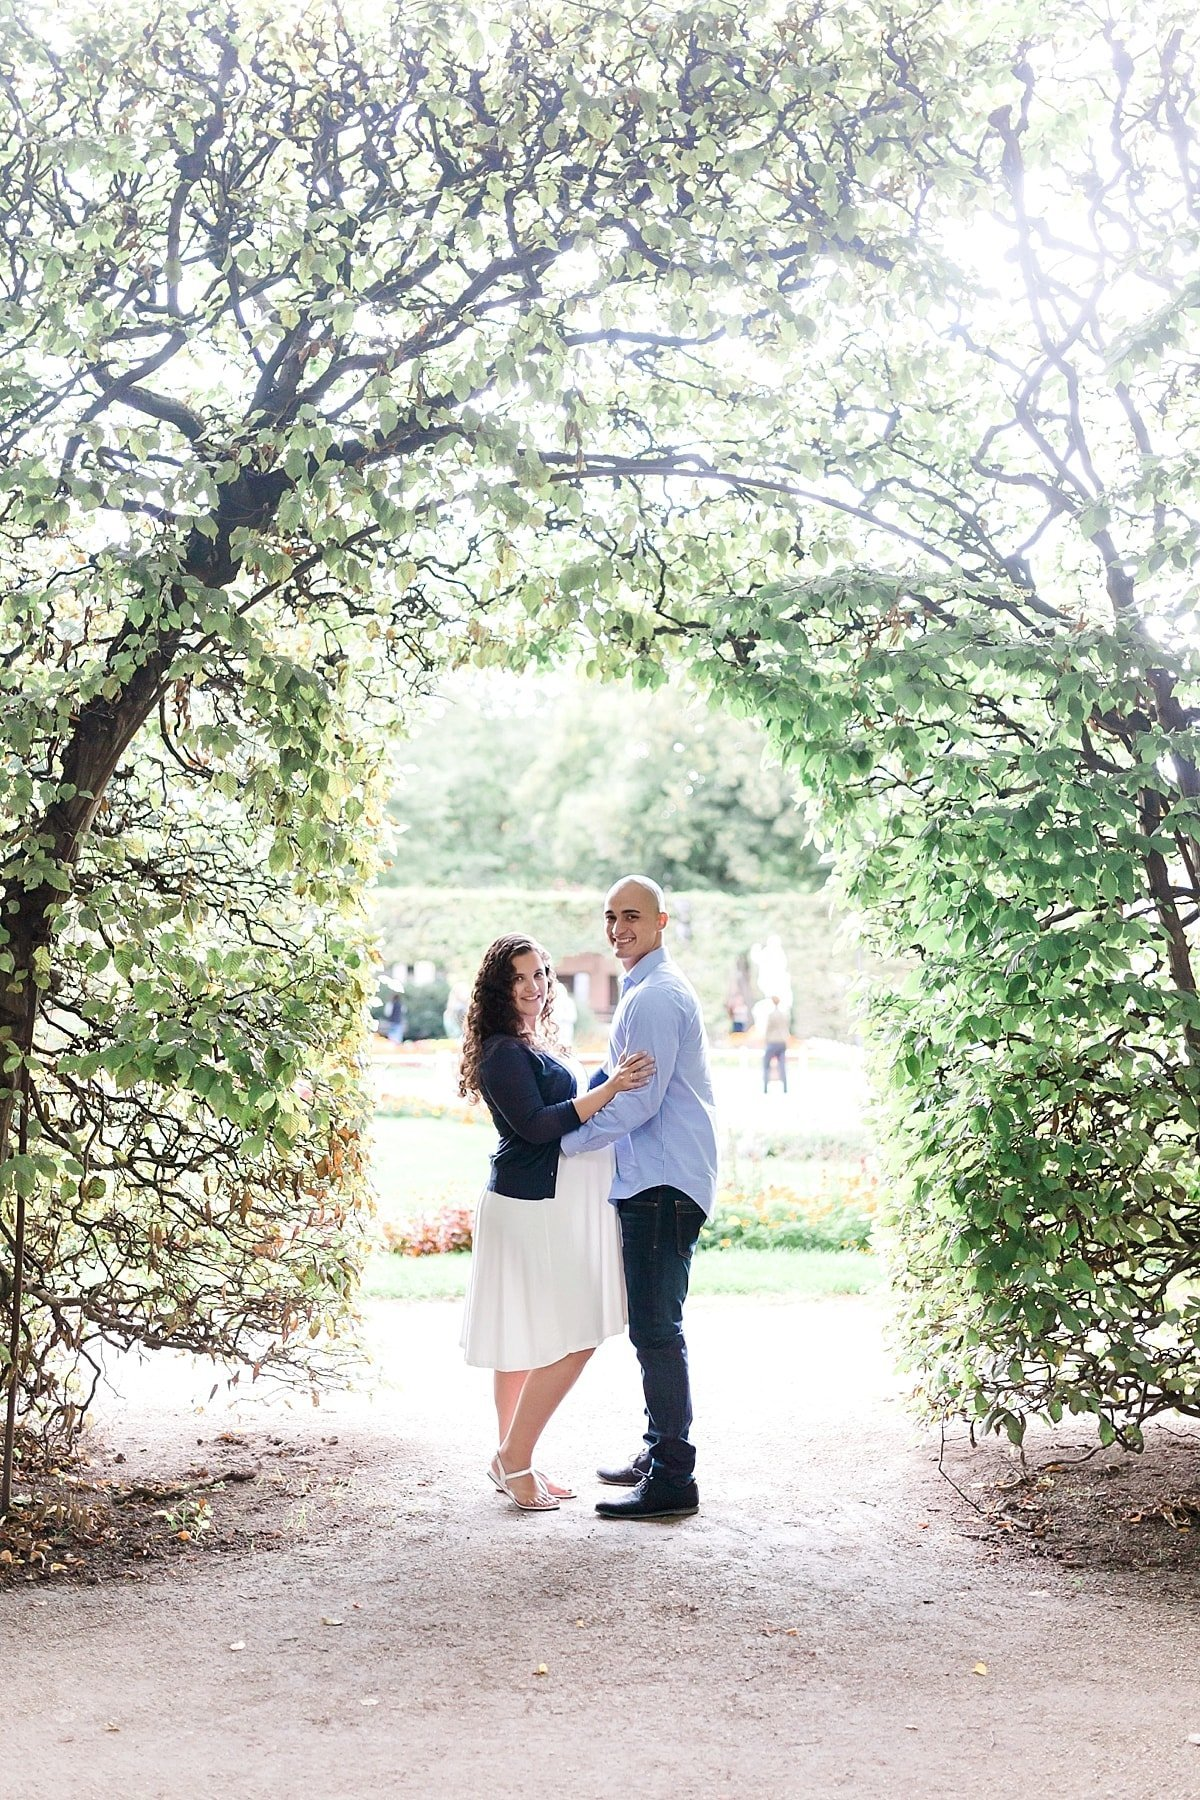 Houston luxury maternity session photographed by Alicia Yarrish Photography